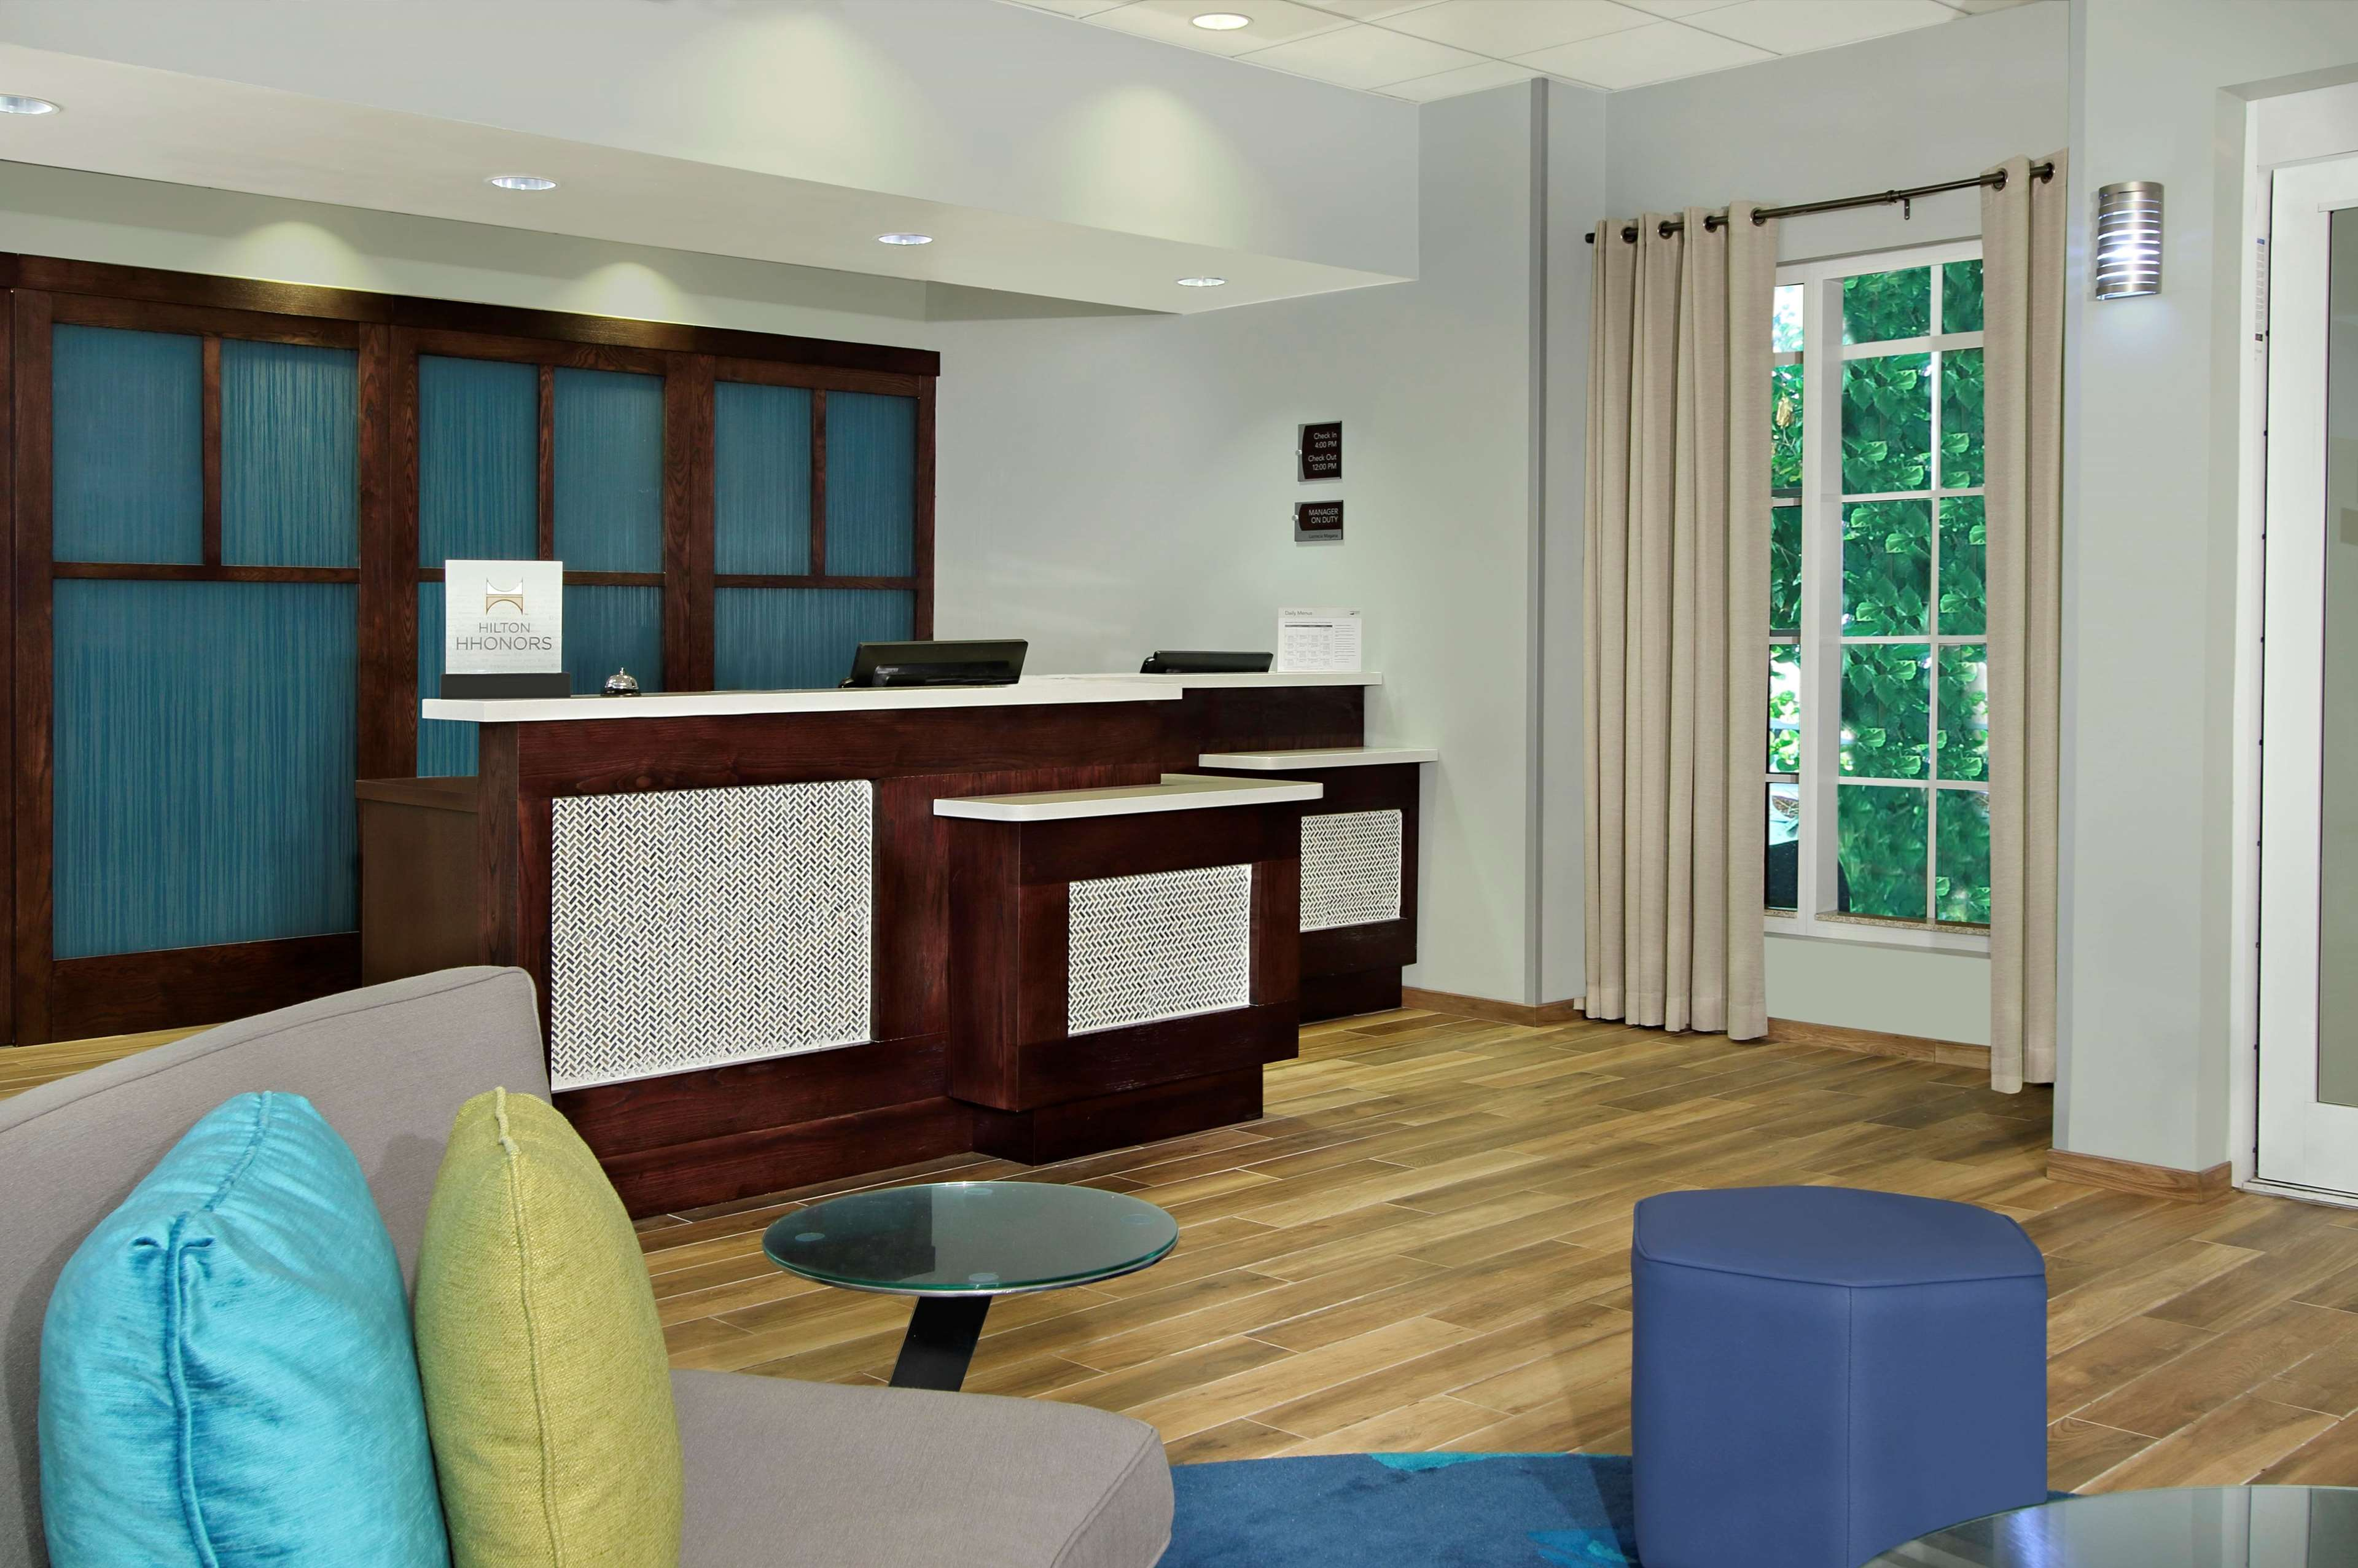 Homewood Suites by Hilton Miami - Airport West image 22